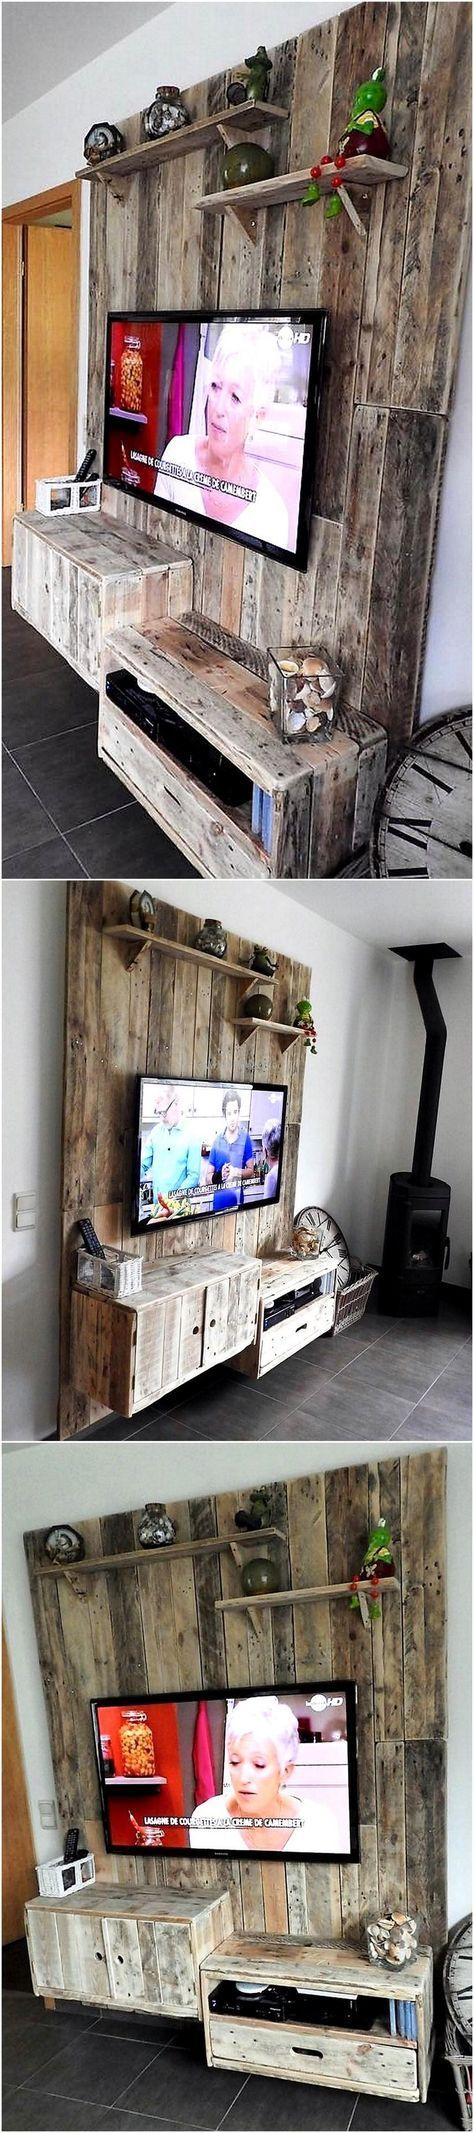 pallet tv stand and wall artavoid drilling